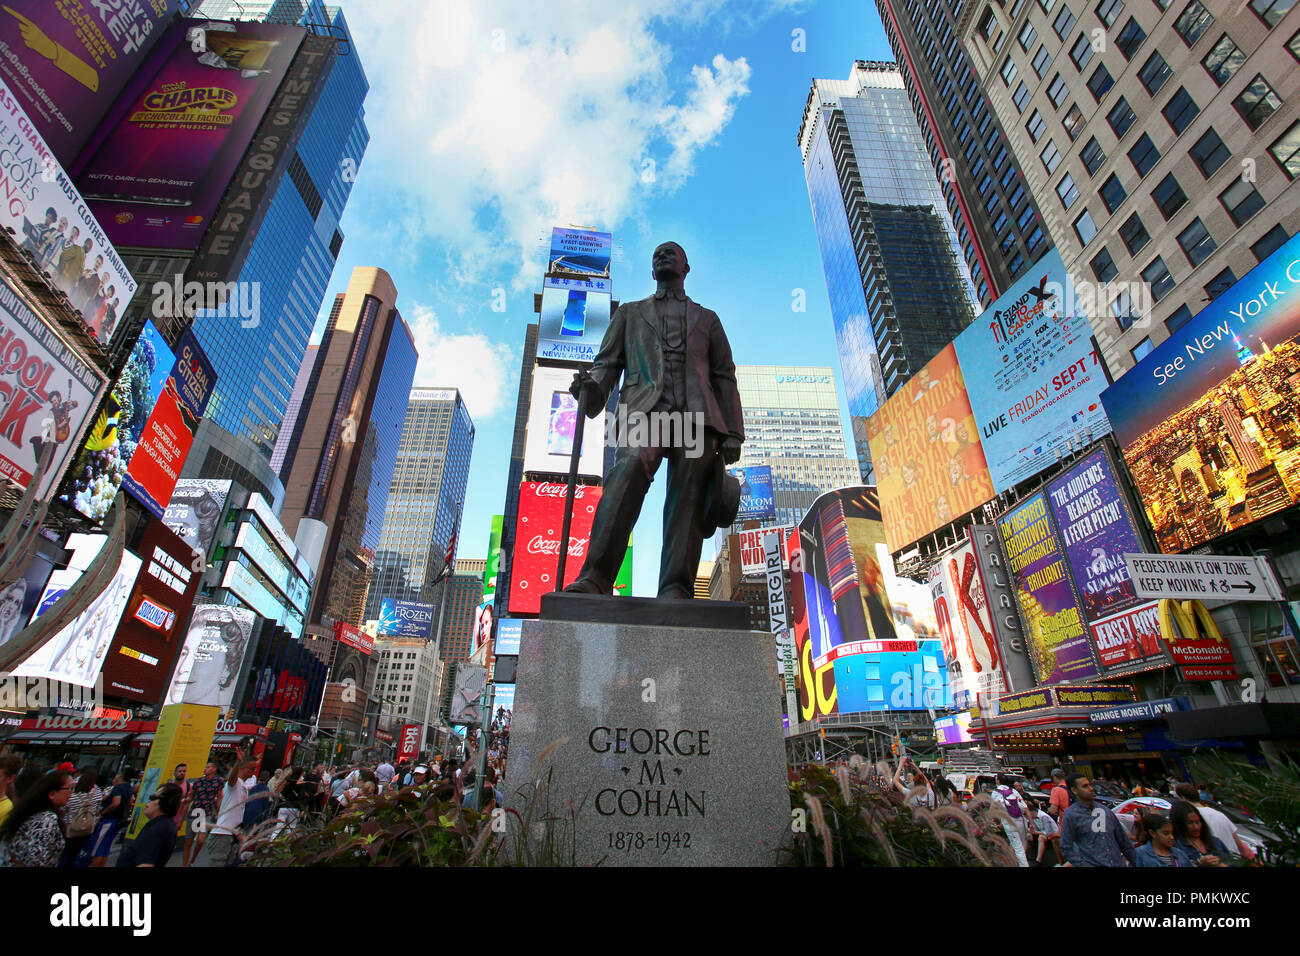 New York, USA – August 24, 2018: Statue of songwriter and performer George Cohan and many people on Times Square at 7th Avenue and Broadway in Midtown Stock Photo